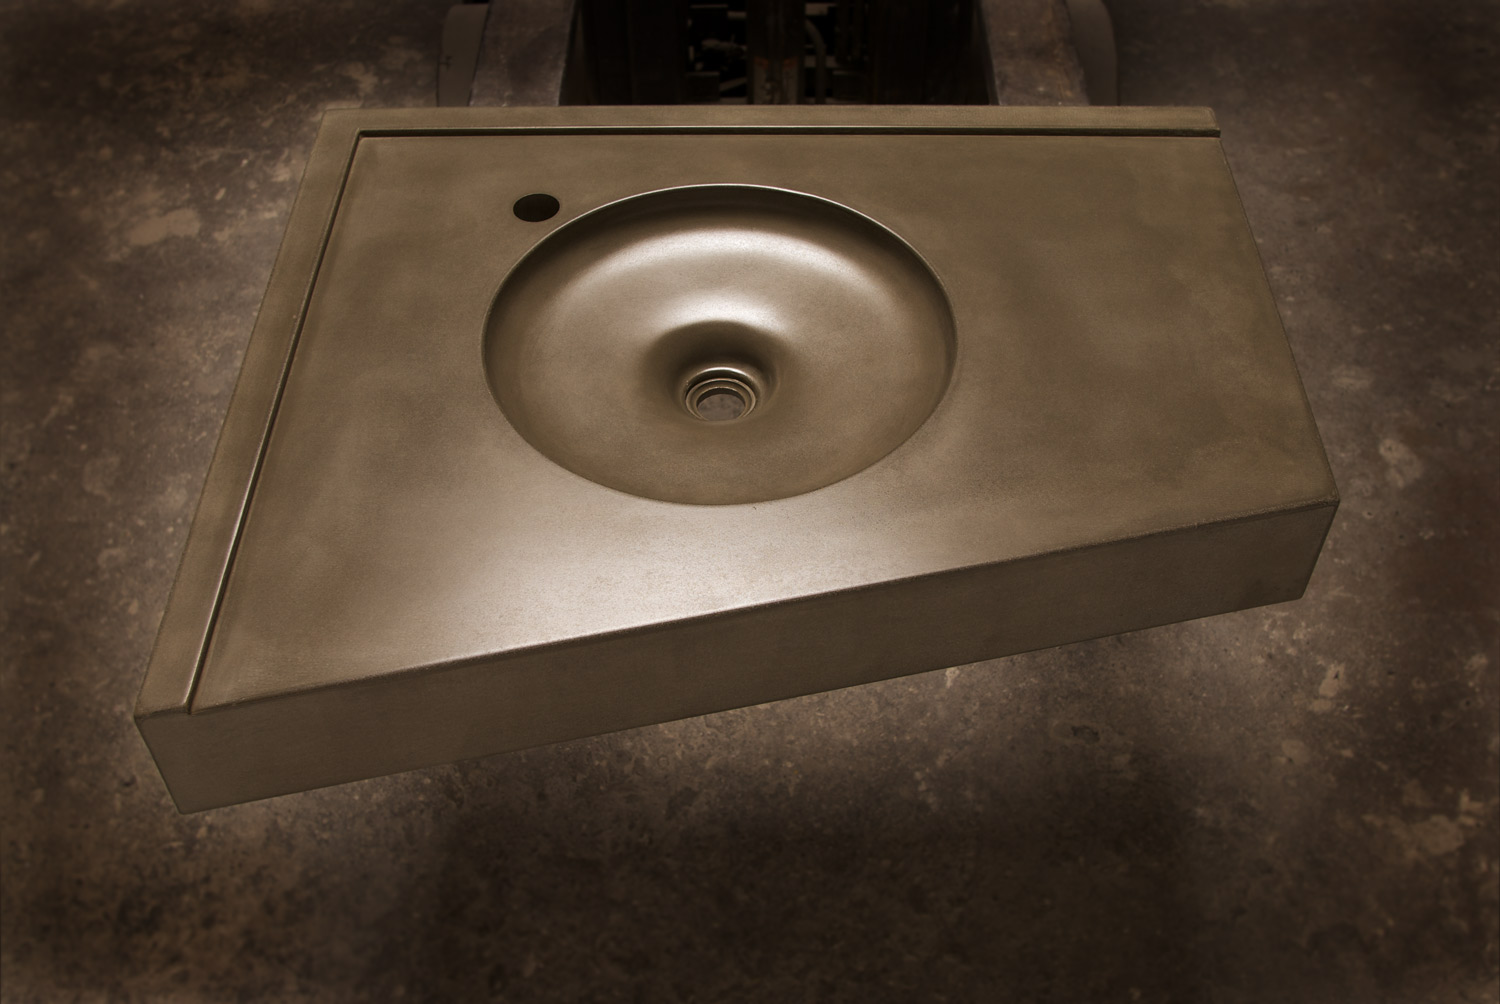 A simple round concrete sink for a floating corner installation, with an integral backsplash